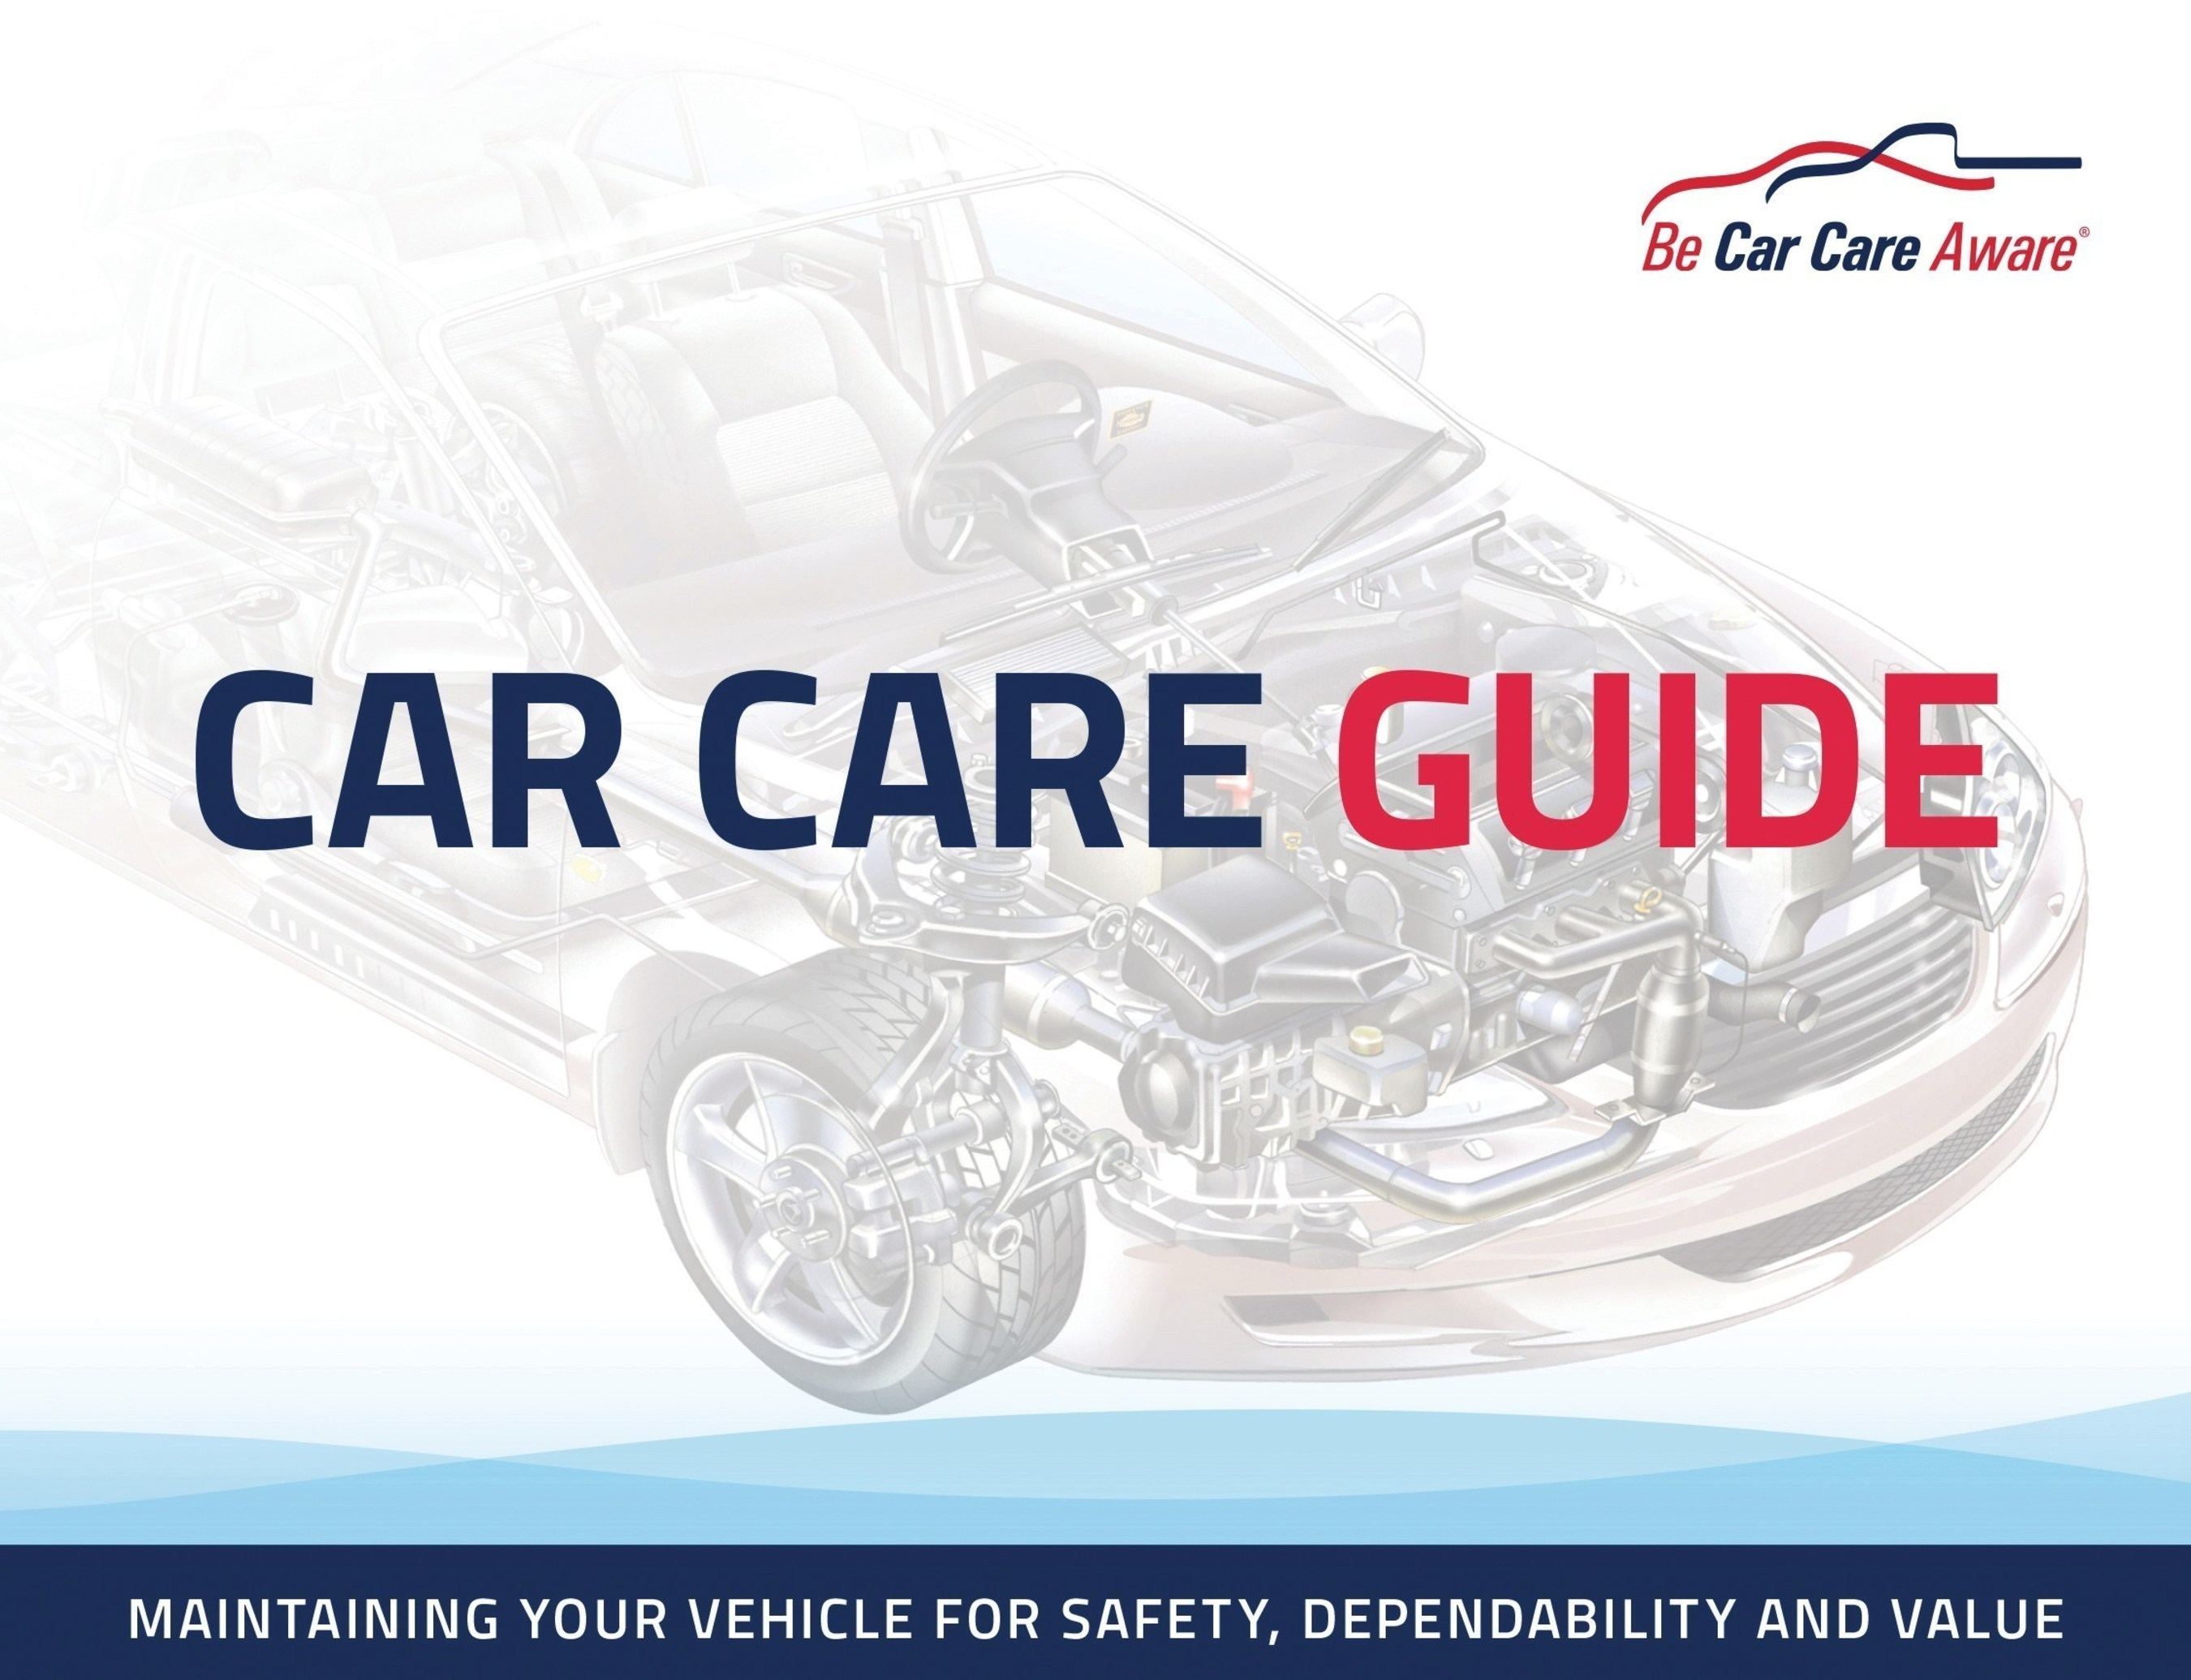 Free Car Care Guide from The Car Care Council at www.carcare.org